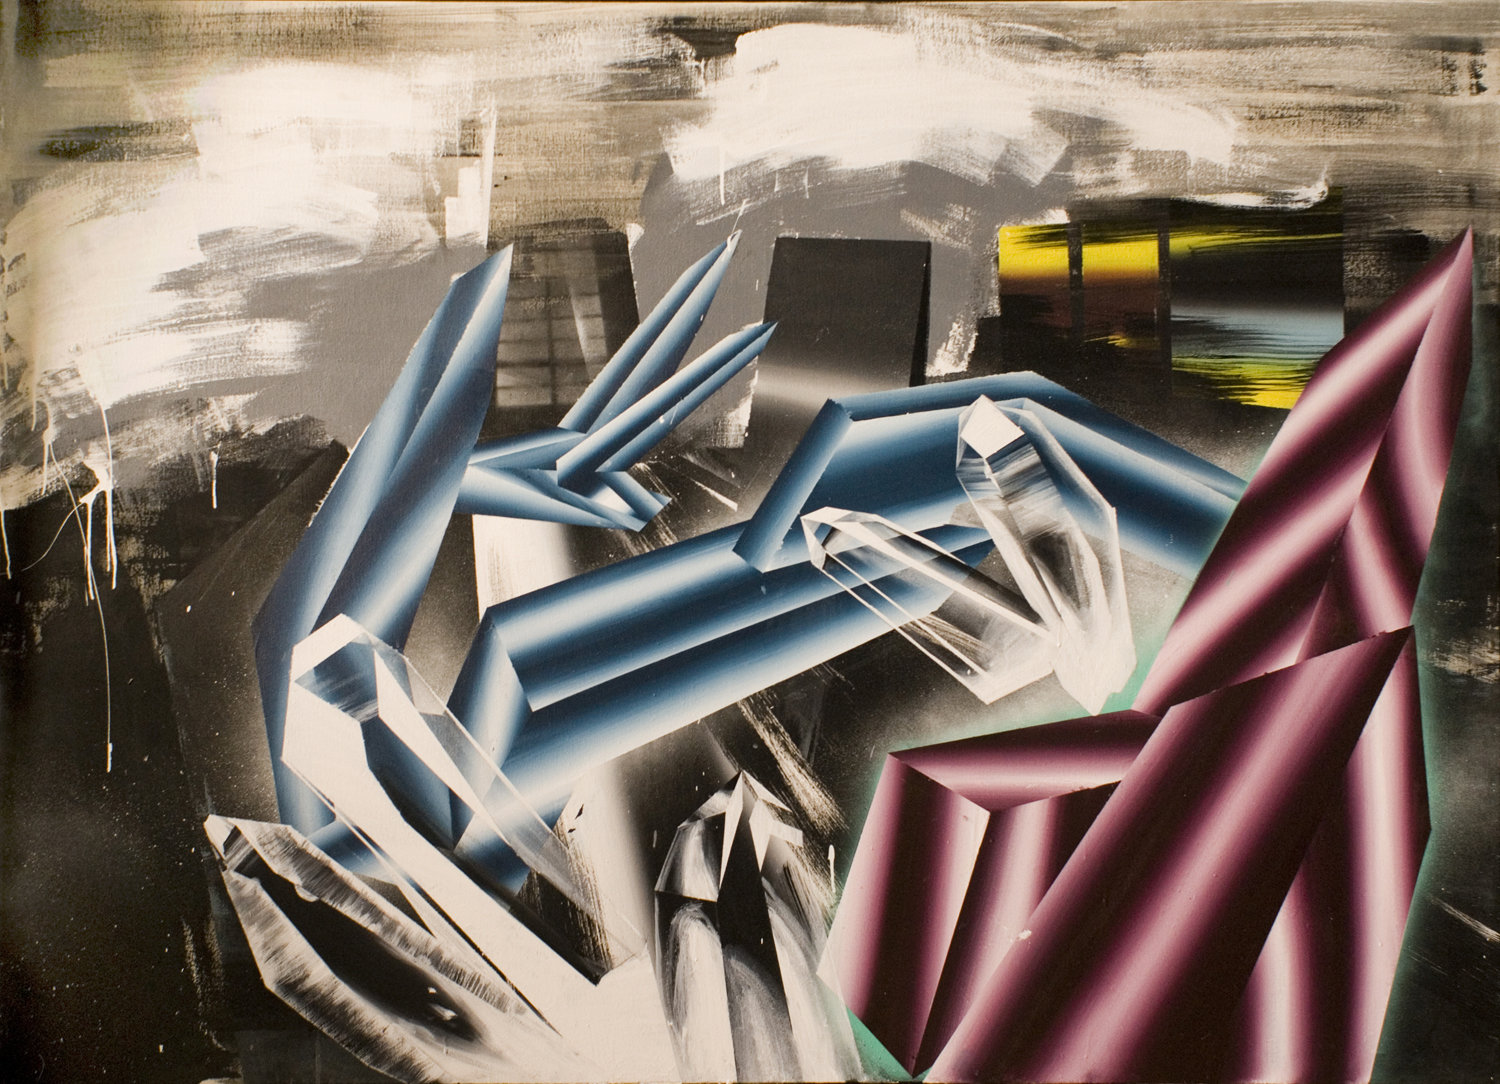 Lucia Horvátová, Crystallization, 2015, 135x190cm, acrylic and spray on canvas